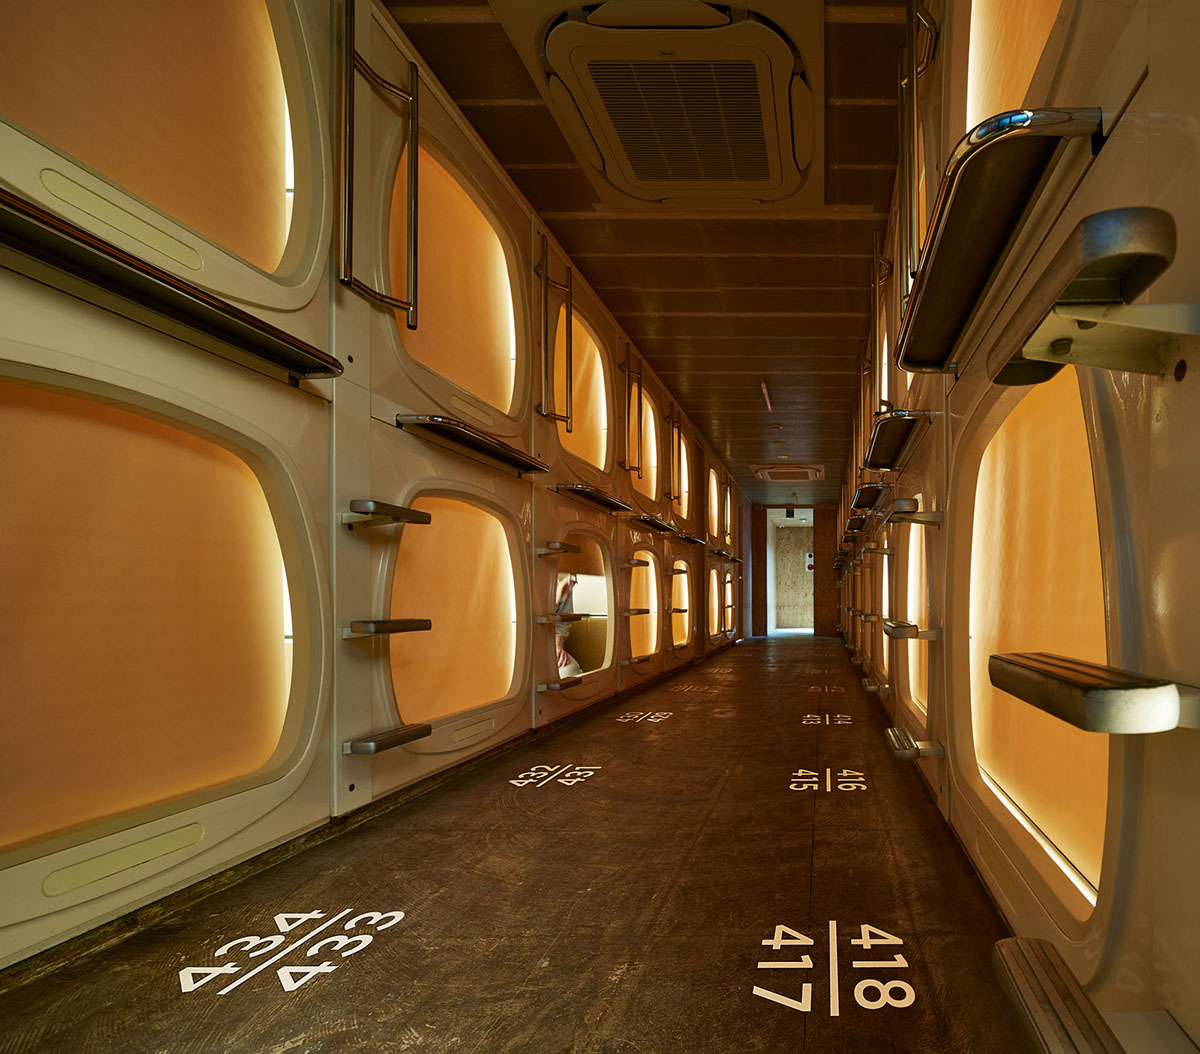 Japan has become famous for its capsule hotels, which often offer travellers good value for money.